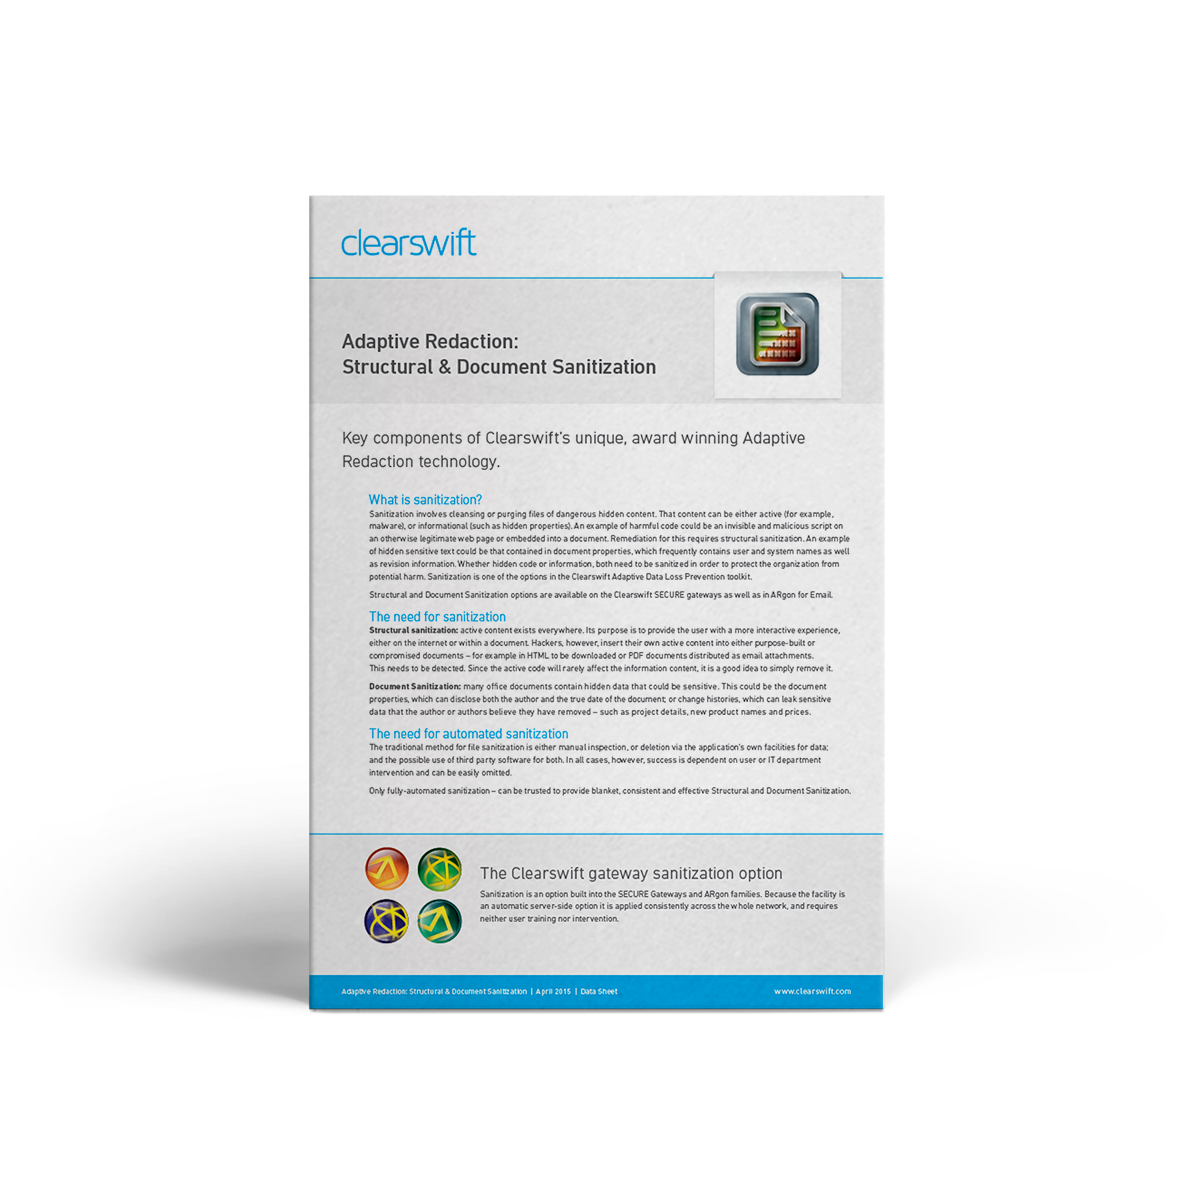 Clearswift Structural Sanitization datasheet